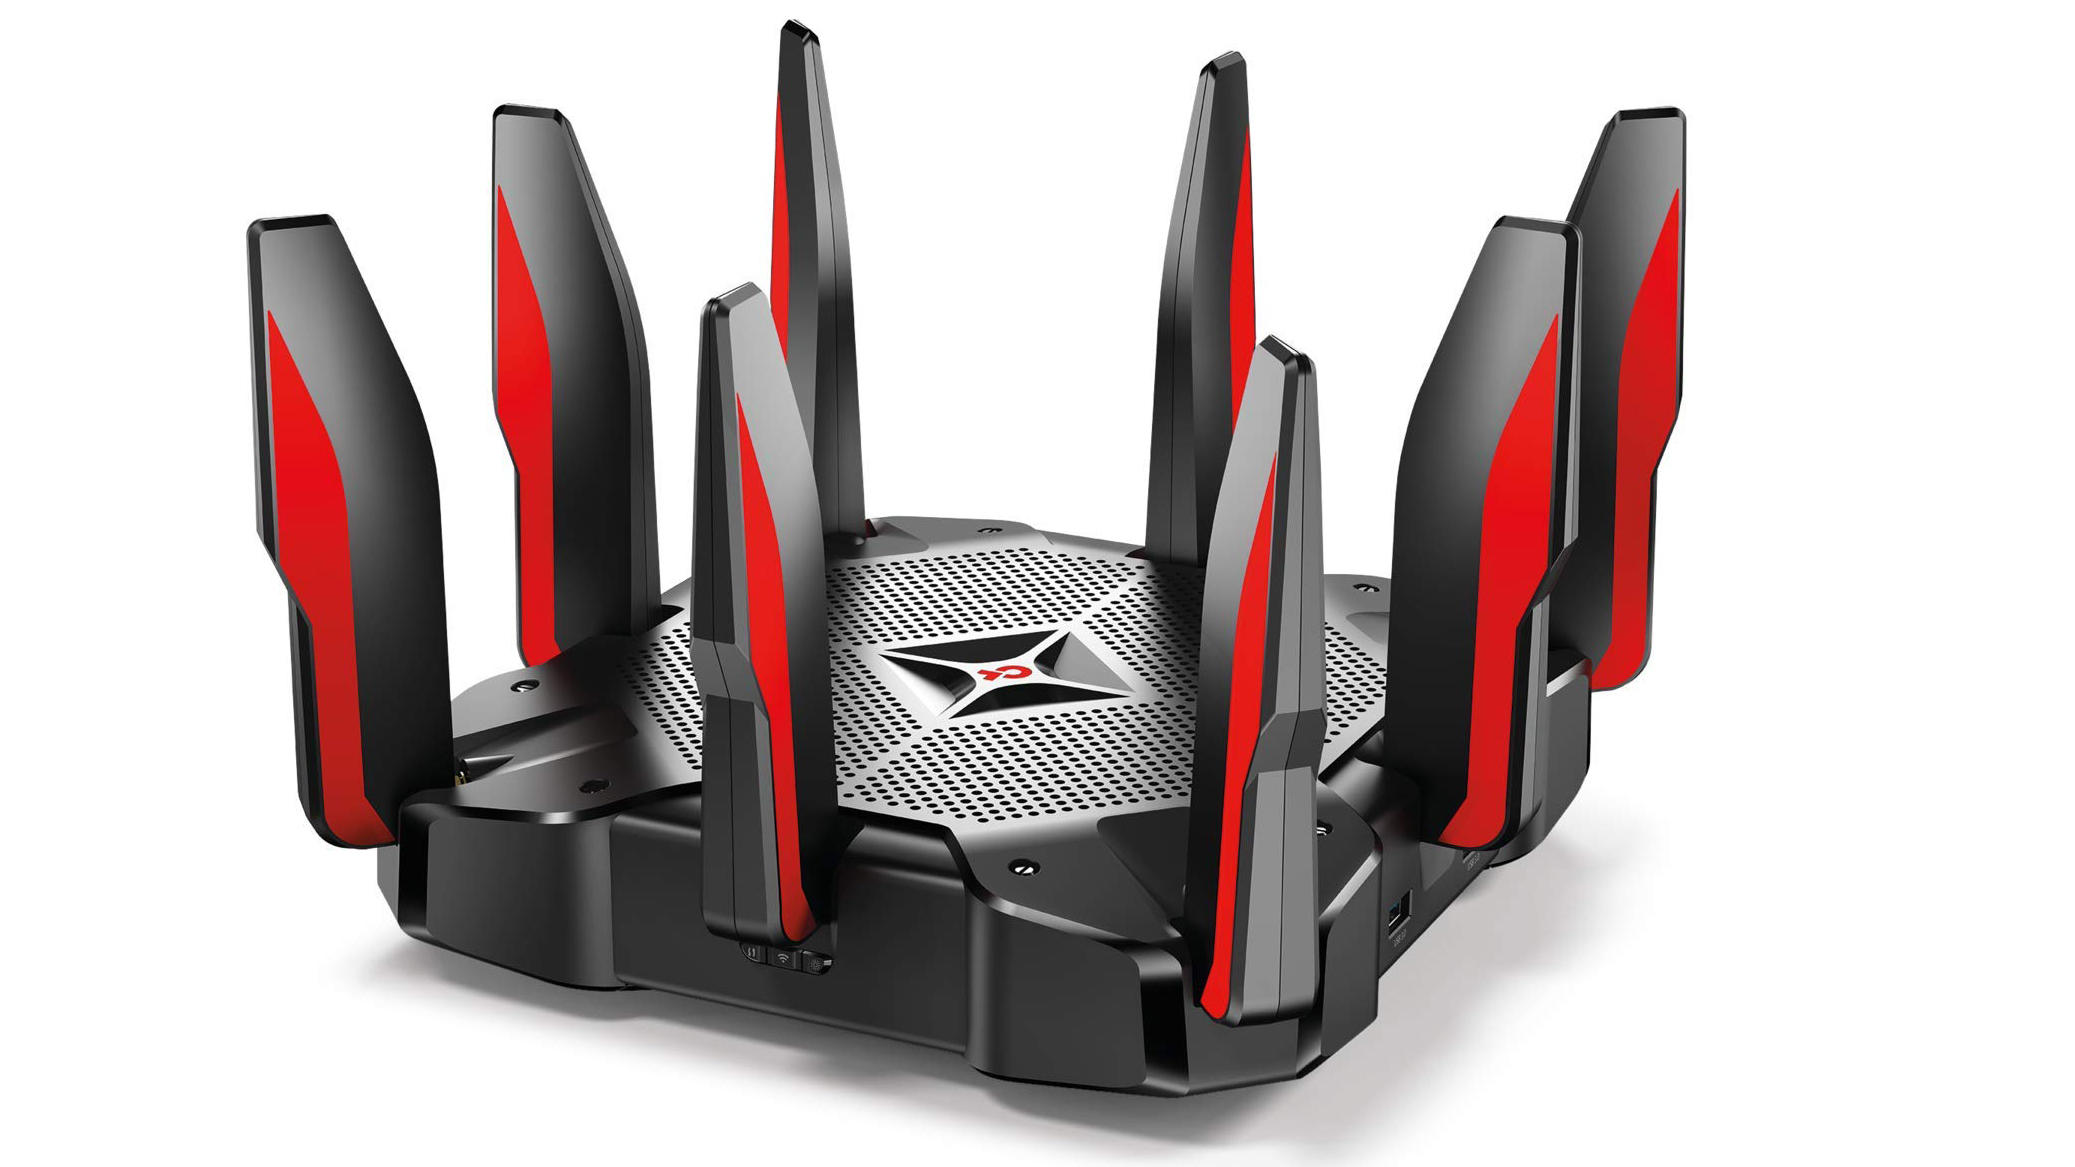 tp-link-ad7200-router-0499-001.jpg